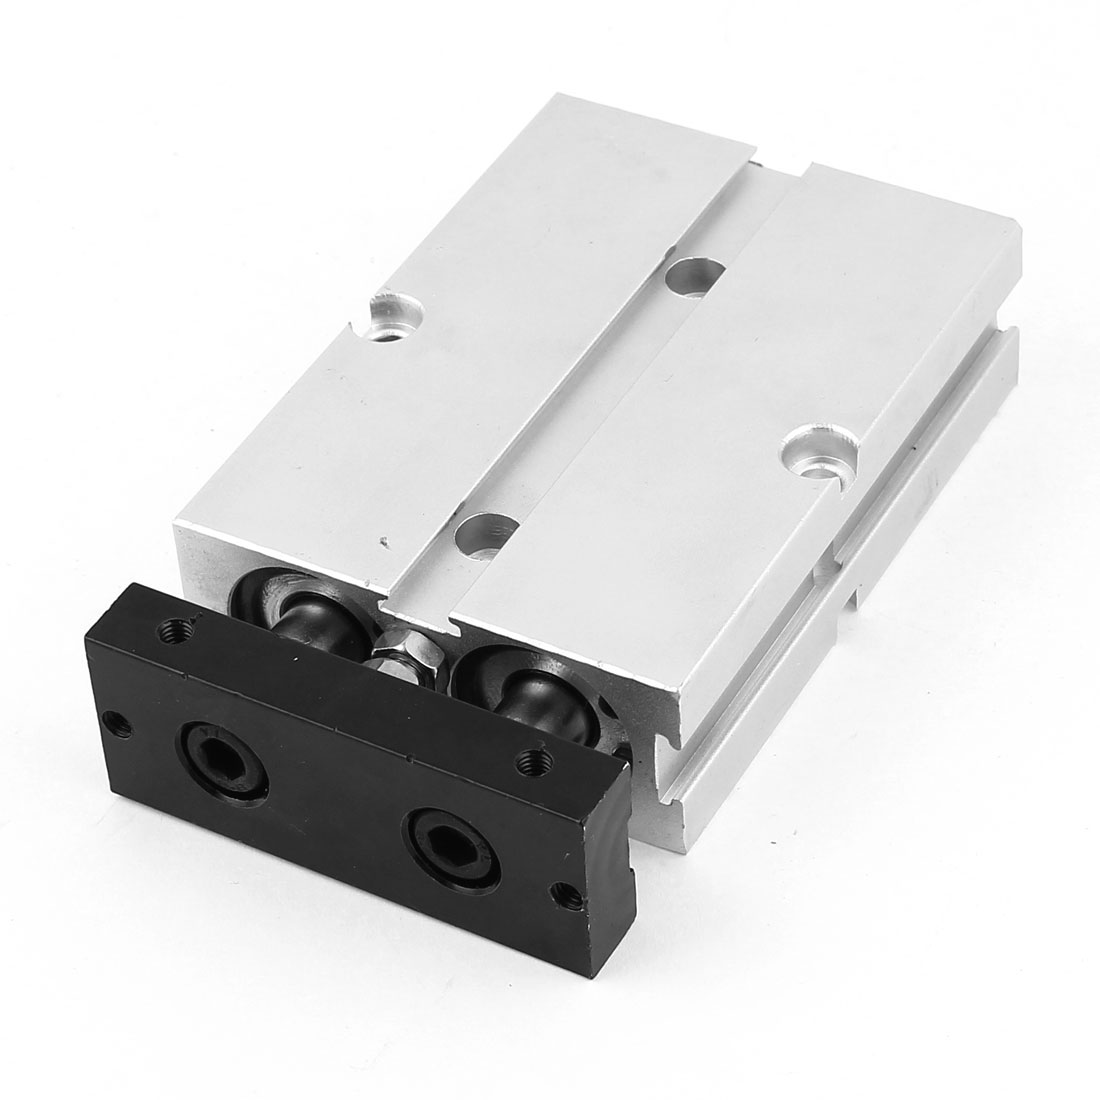 TN20x25 20mm Bore 25mm Stroke Double Rod Aluminum Alloy Pneumatic Air Cylinder